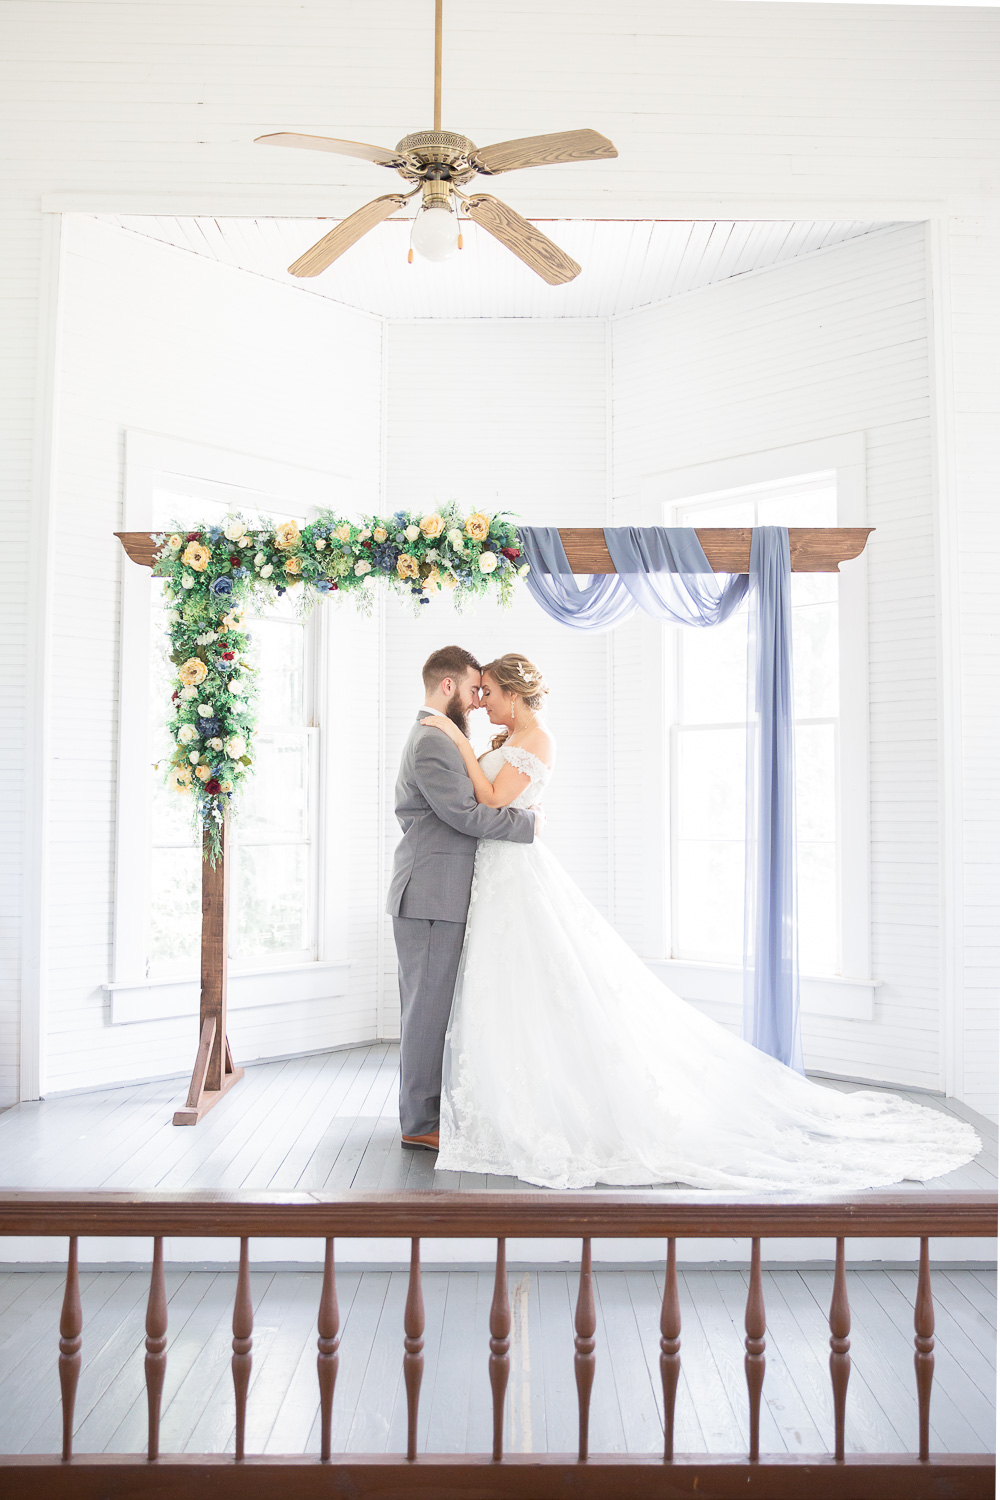 Annie Elise Photography | Ceremony | Bride and Groom portrait | Flower arbor | White Chapel | Slate Blue Wedding